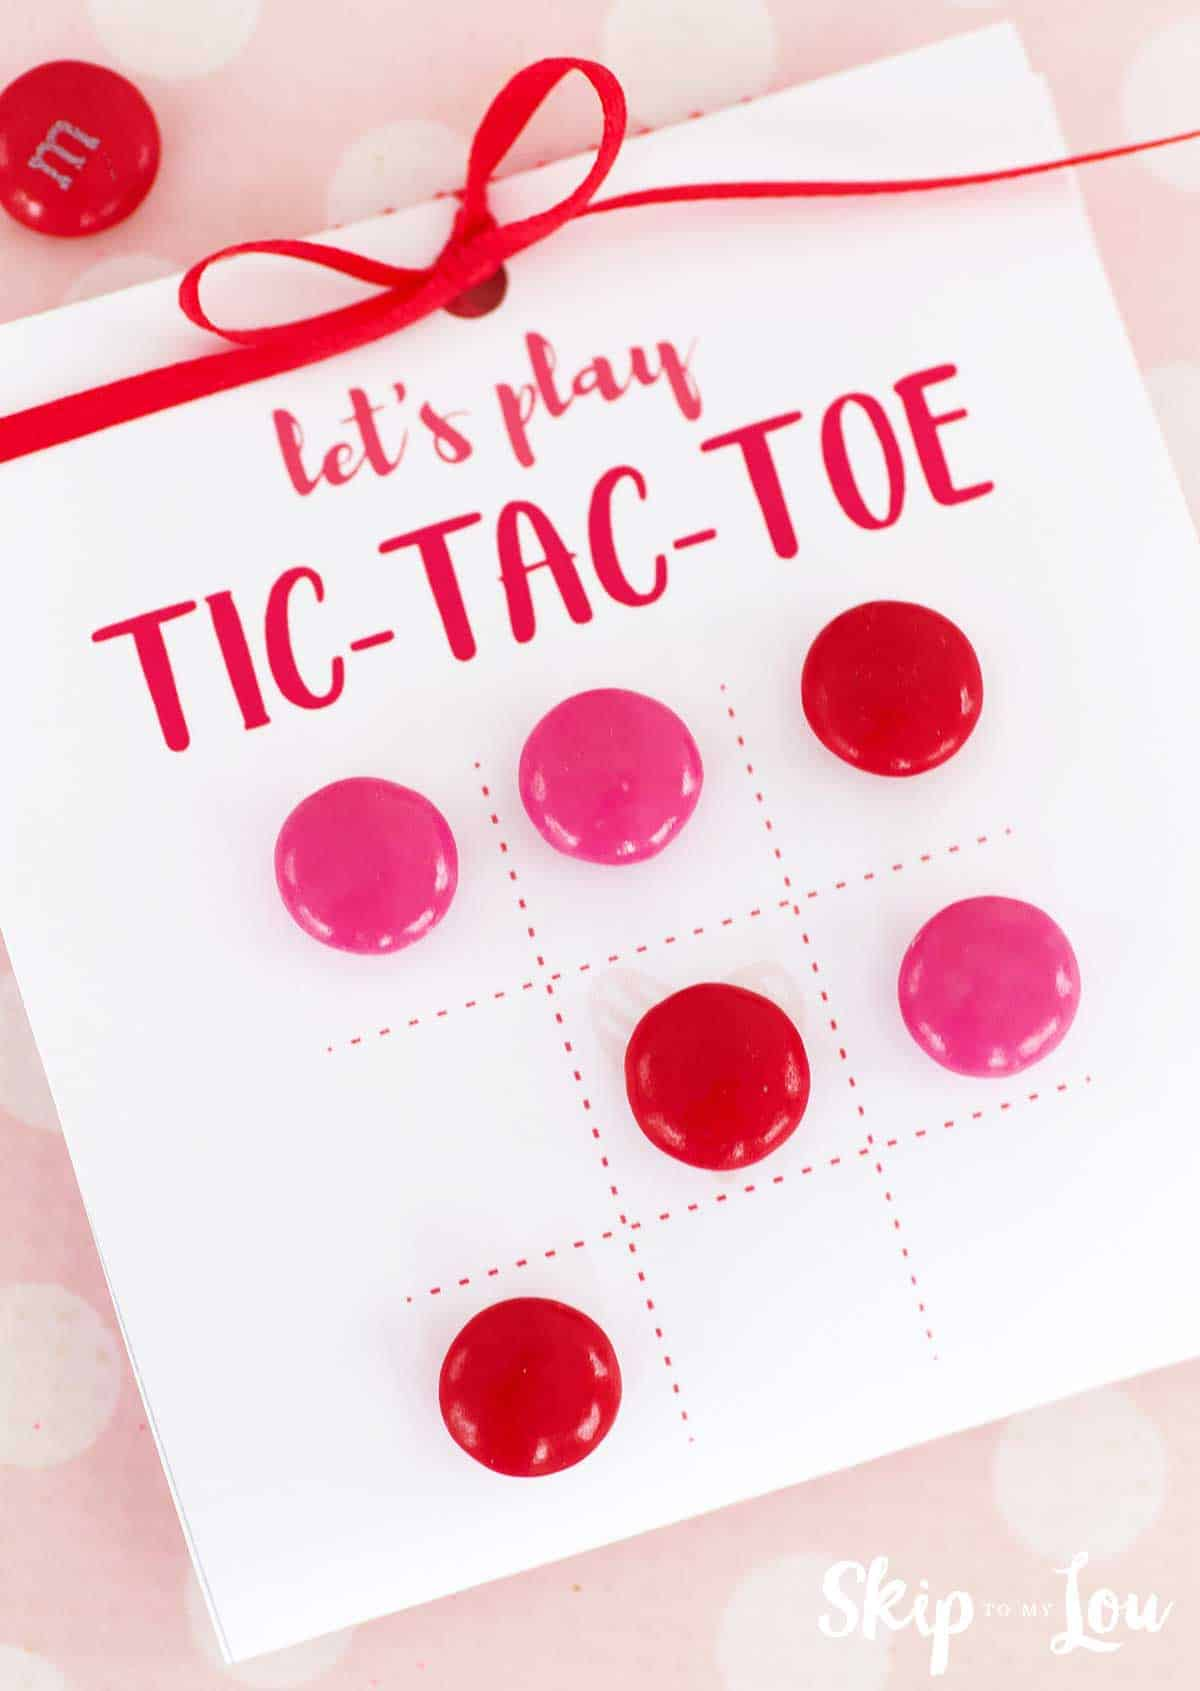 tic tac toe game with candy pieces